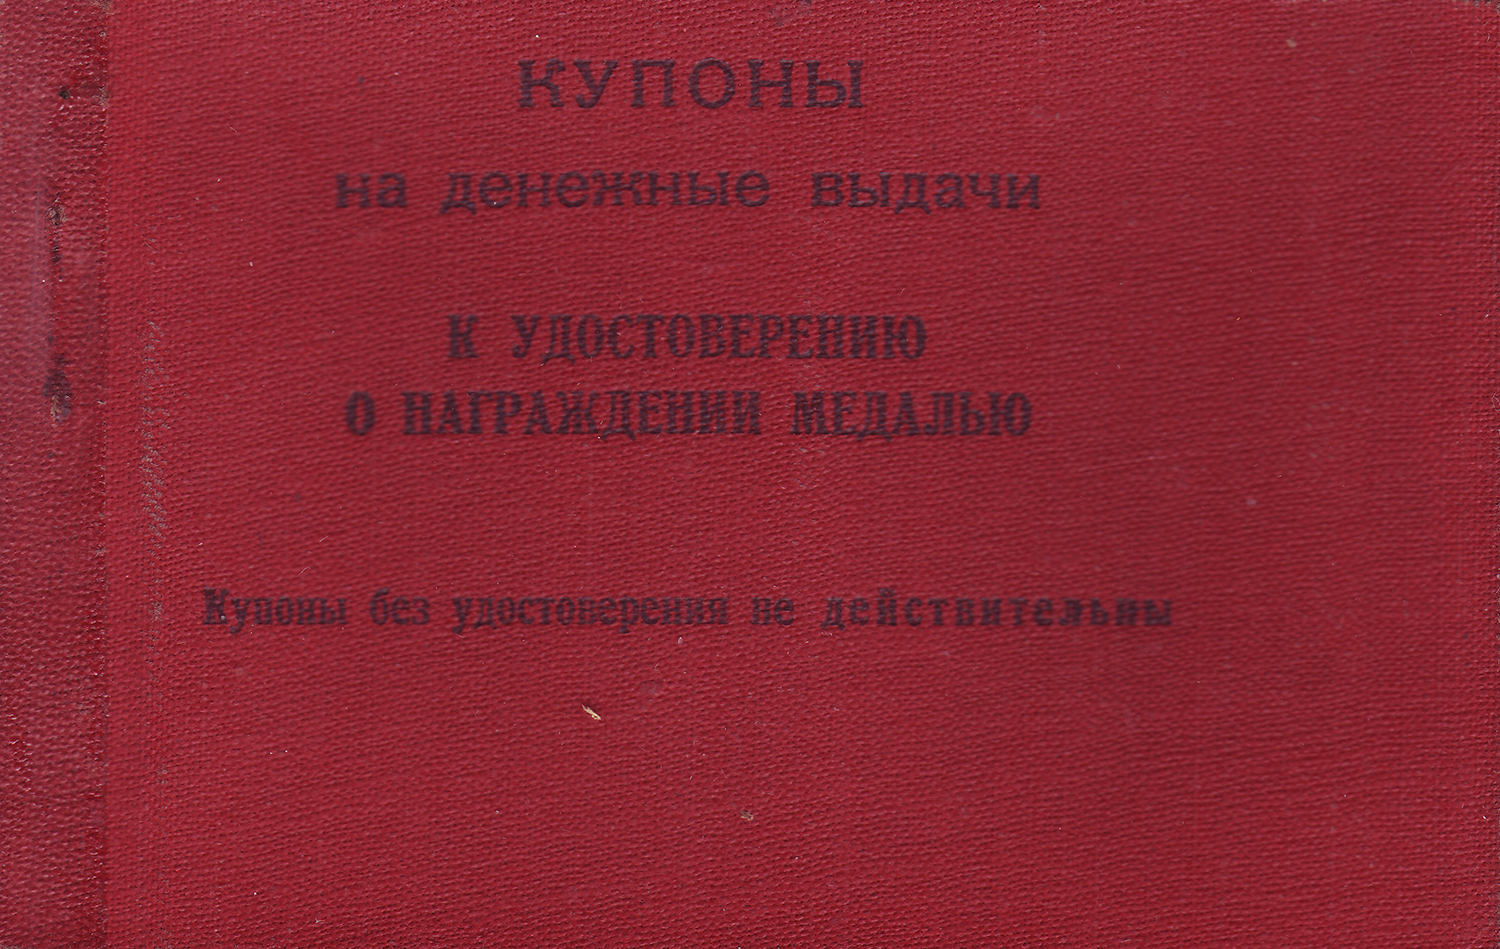 Document authorizing payment of medal award compensation: 10 roubles / month